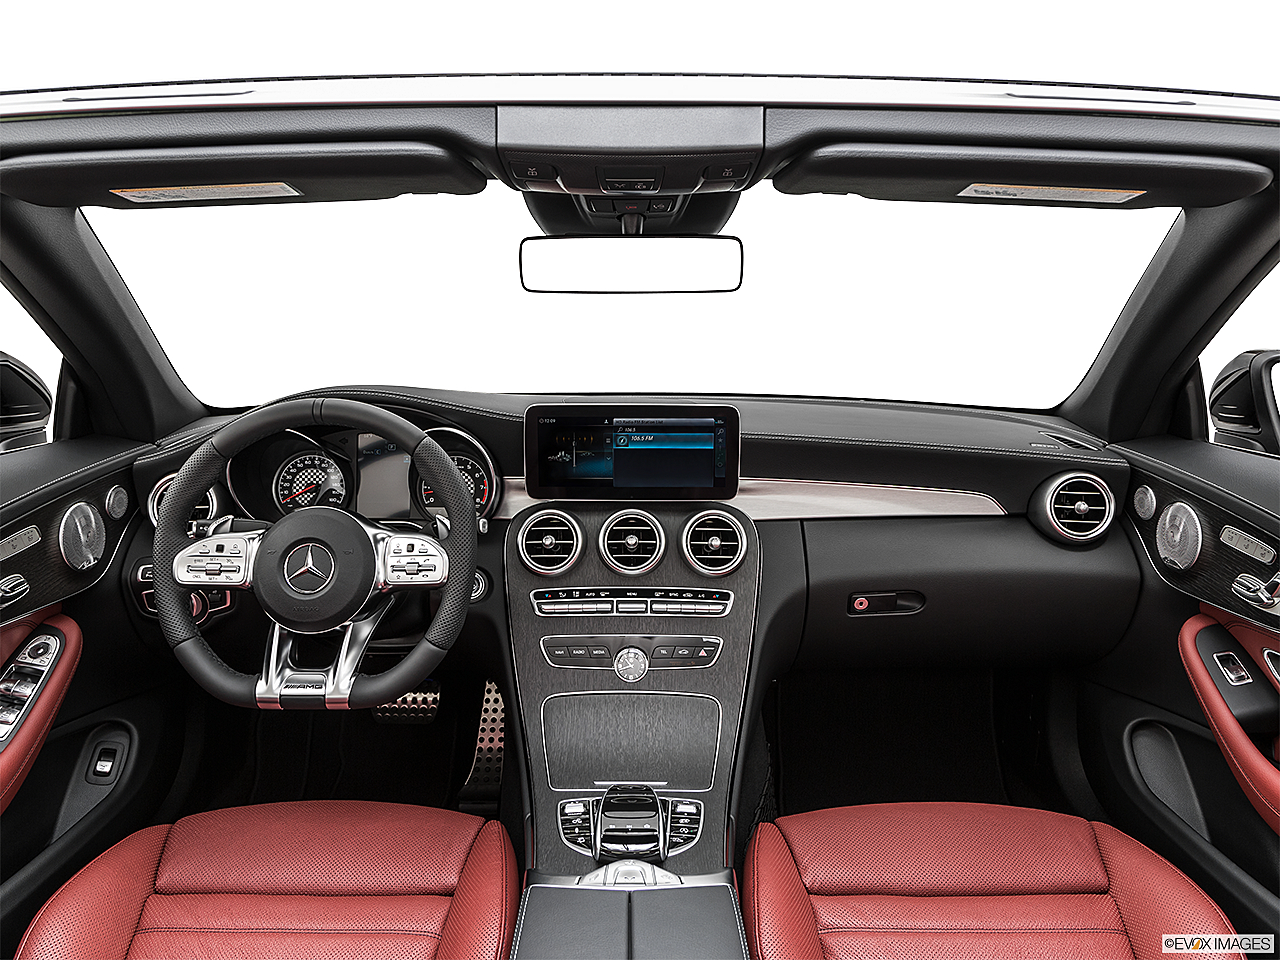 2019 Mercedes-Benz C-Class AMG C 43, centered wide dash shot